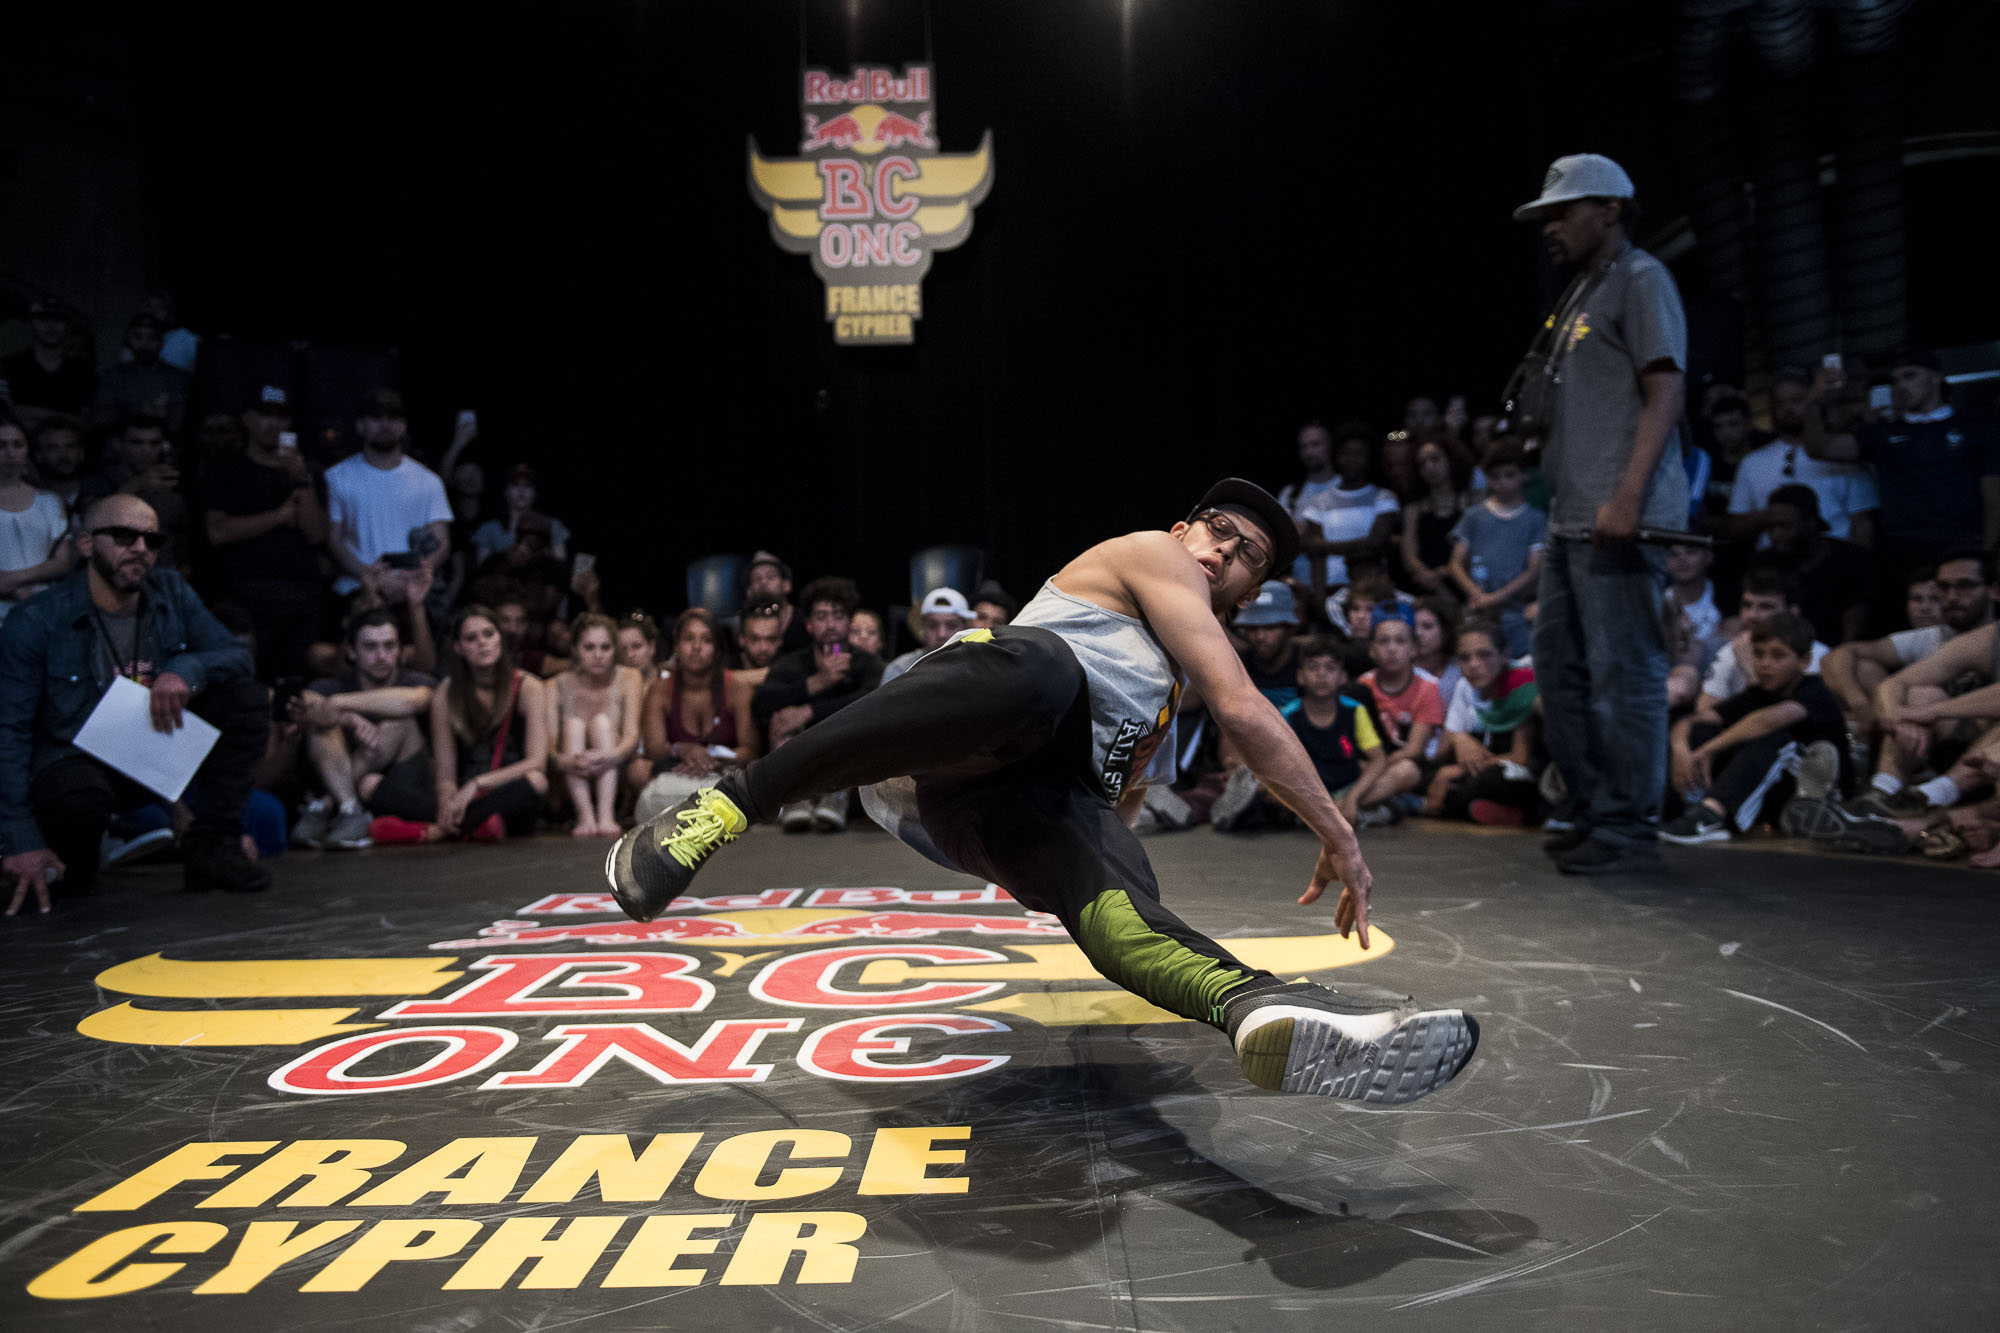 Lilou doing a judge demo at the WIP Villette during the Red Bull BC One France Cypher Final in Paris, France on July 10th 2016.